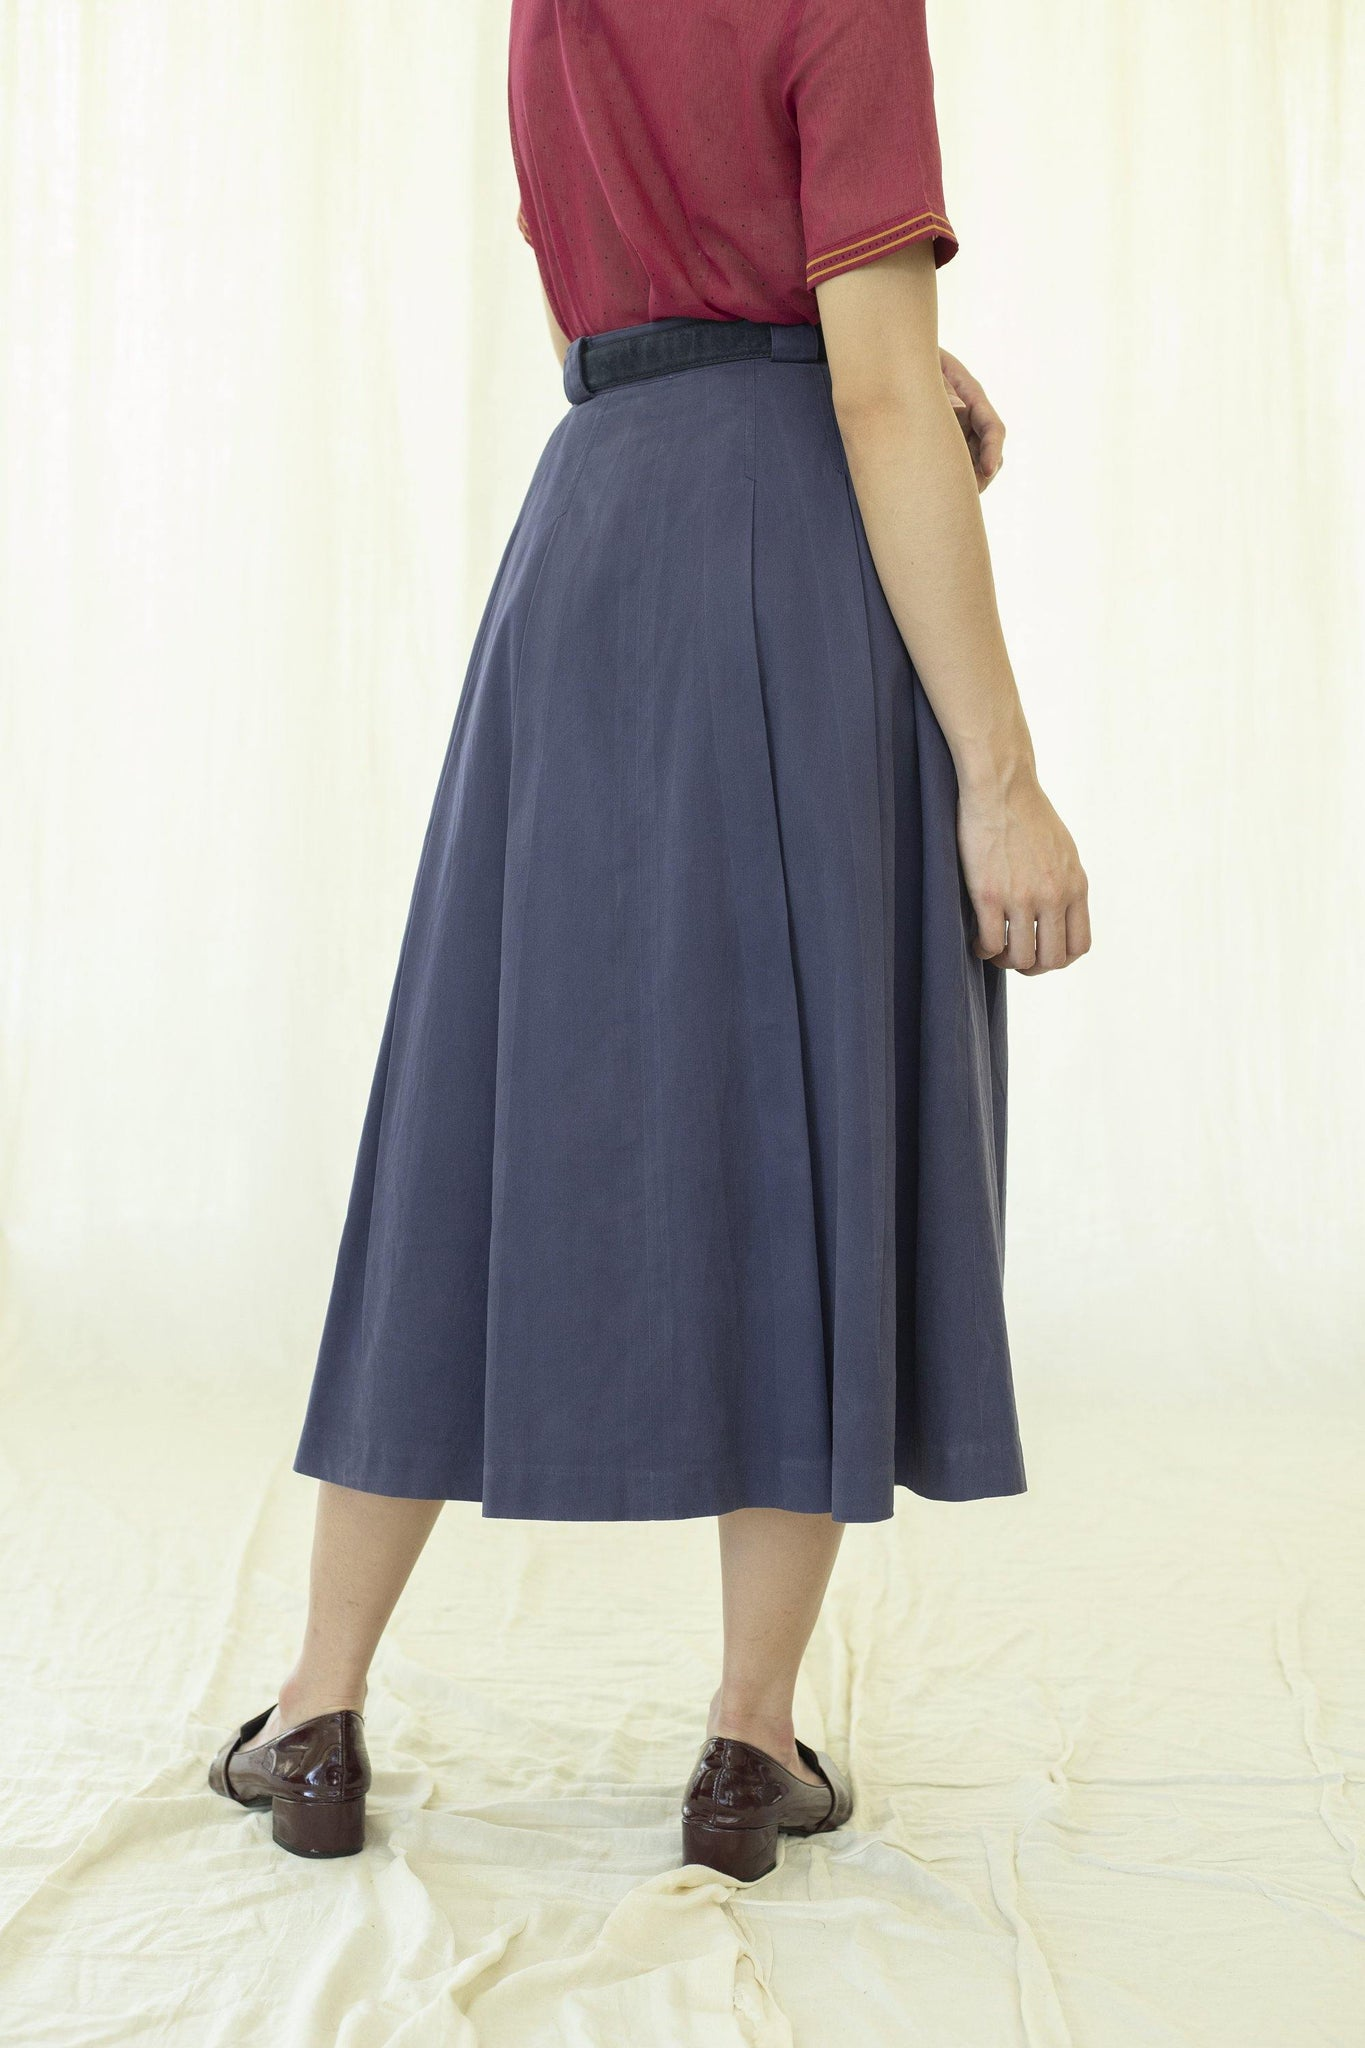 Skirt l Navy blue vintage cotton skirt - Sugar & Cream Vintage